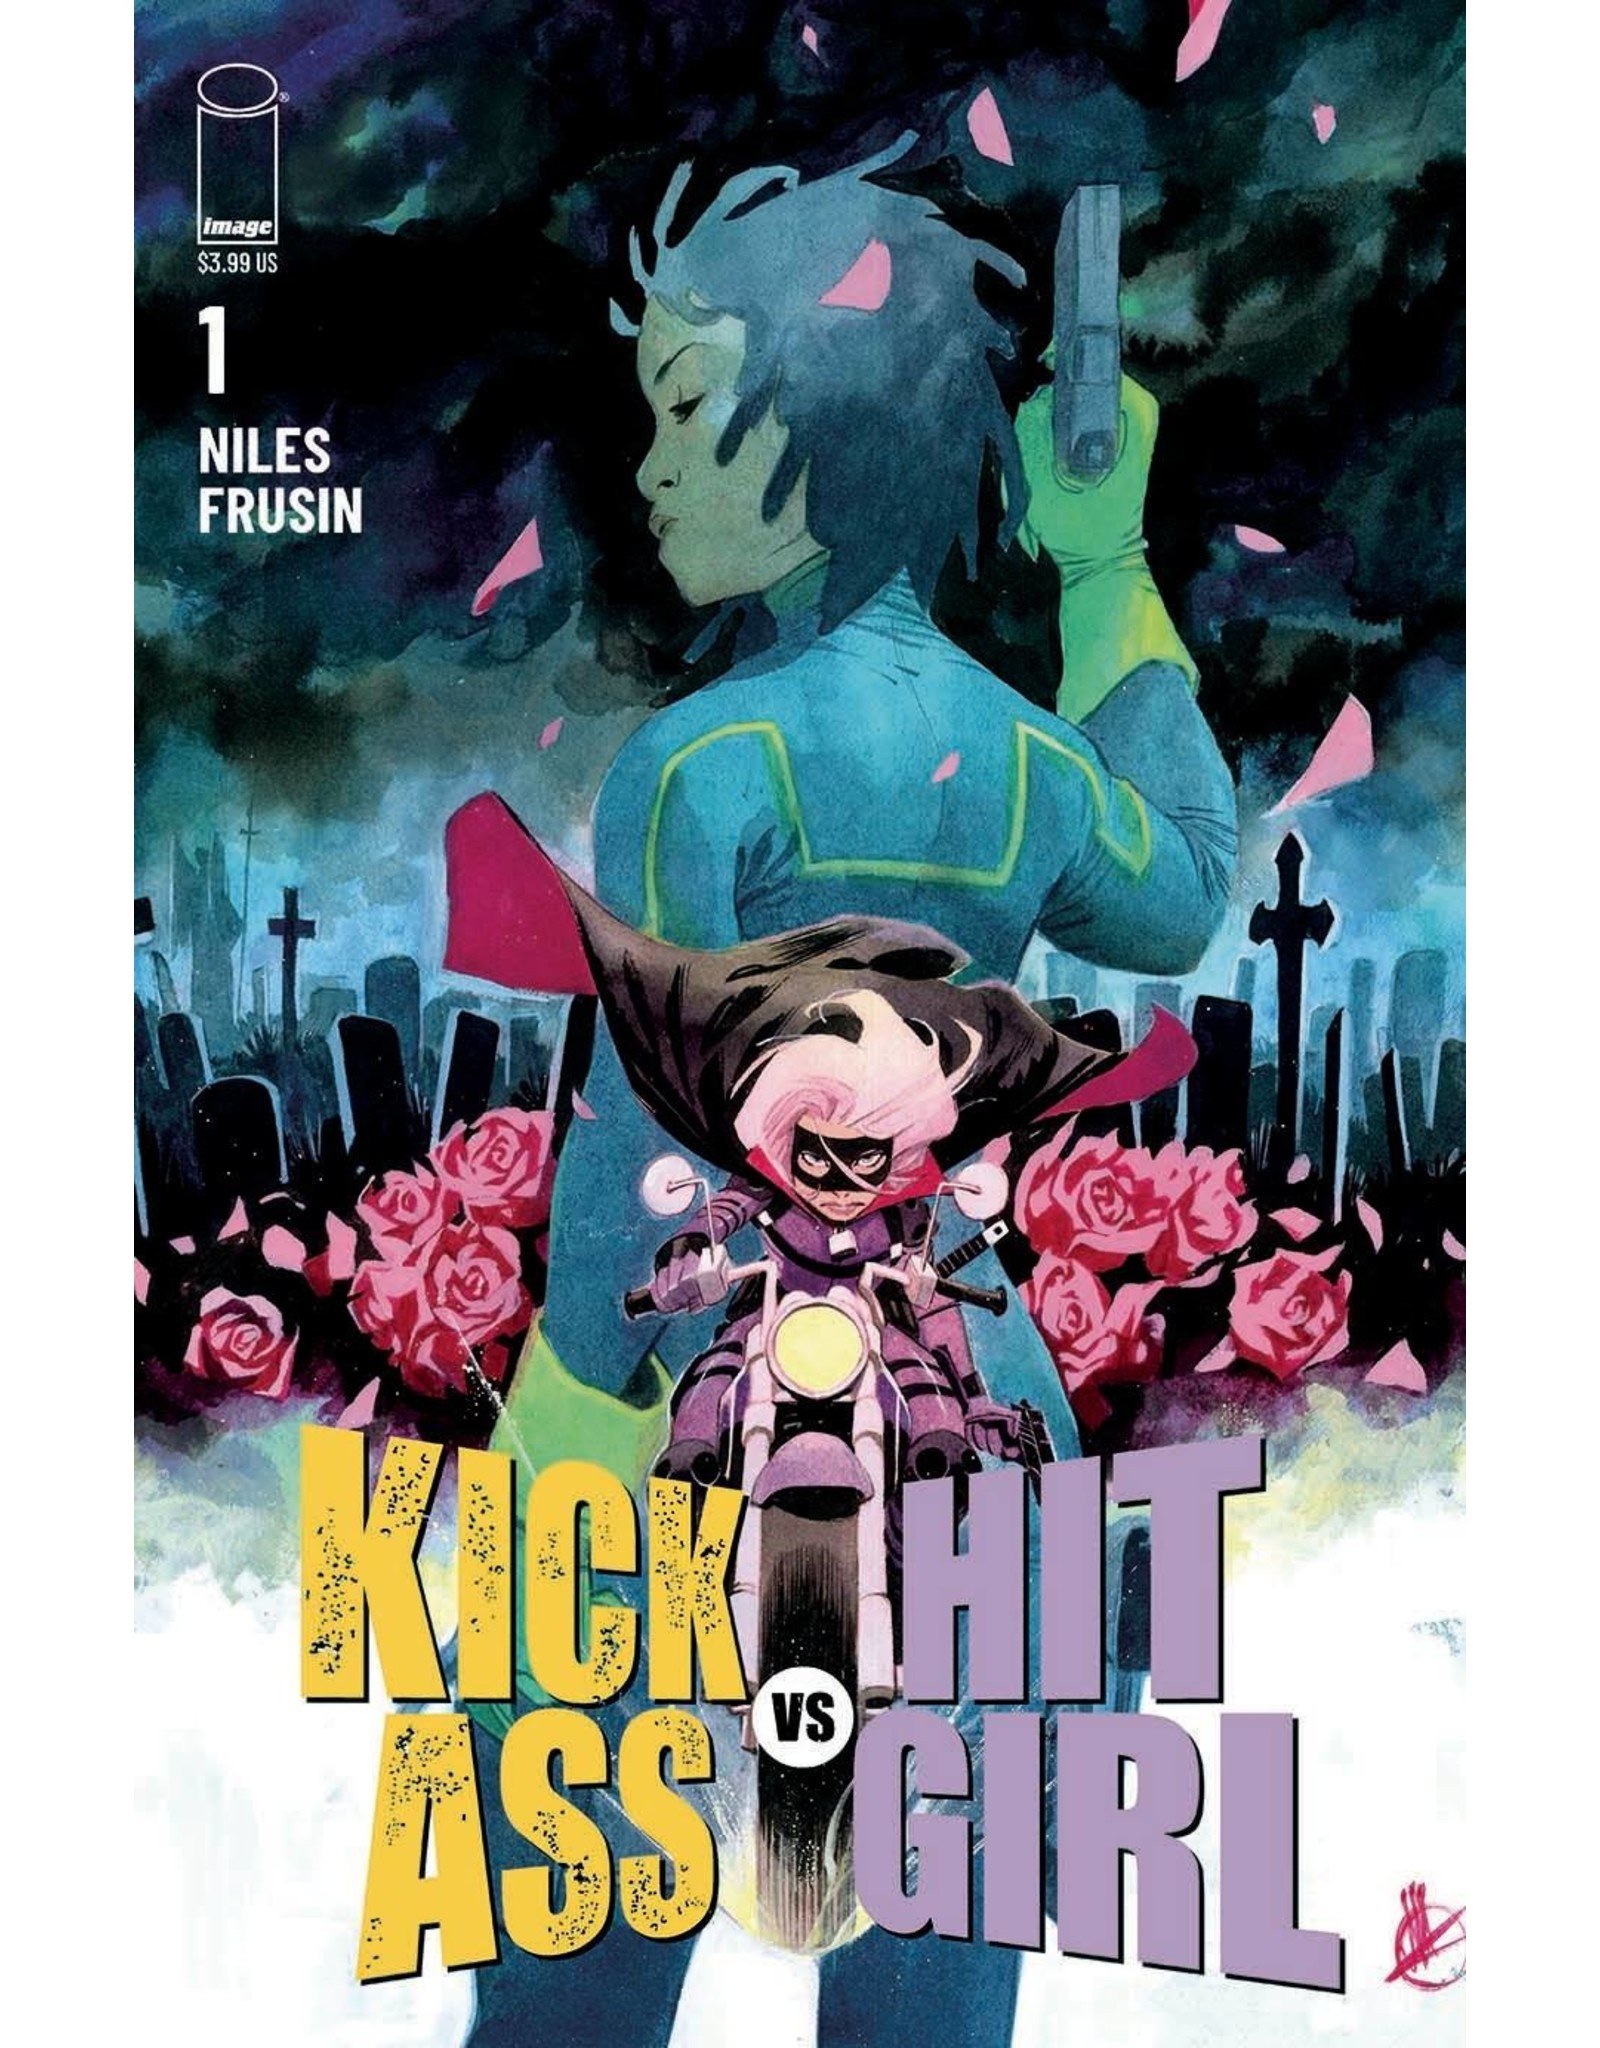 Image Comics KICK-ASS VS HIT-GIRL #1 (OF 5) CVR C SCALERA (RES) (MR)